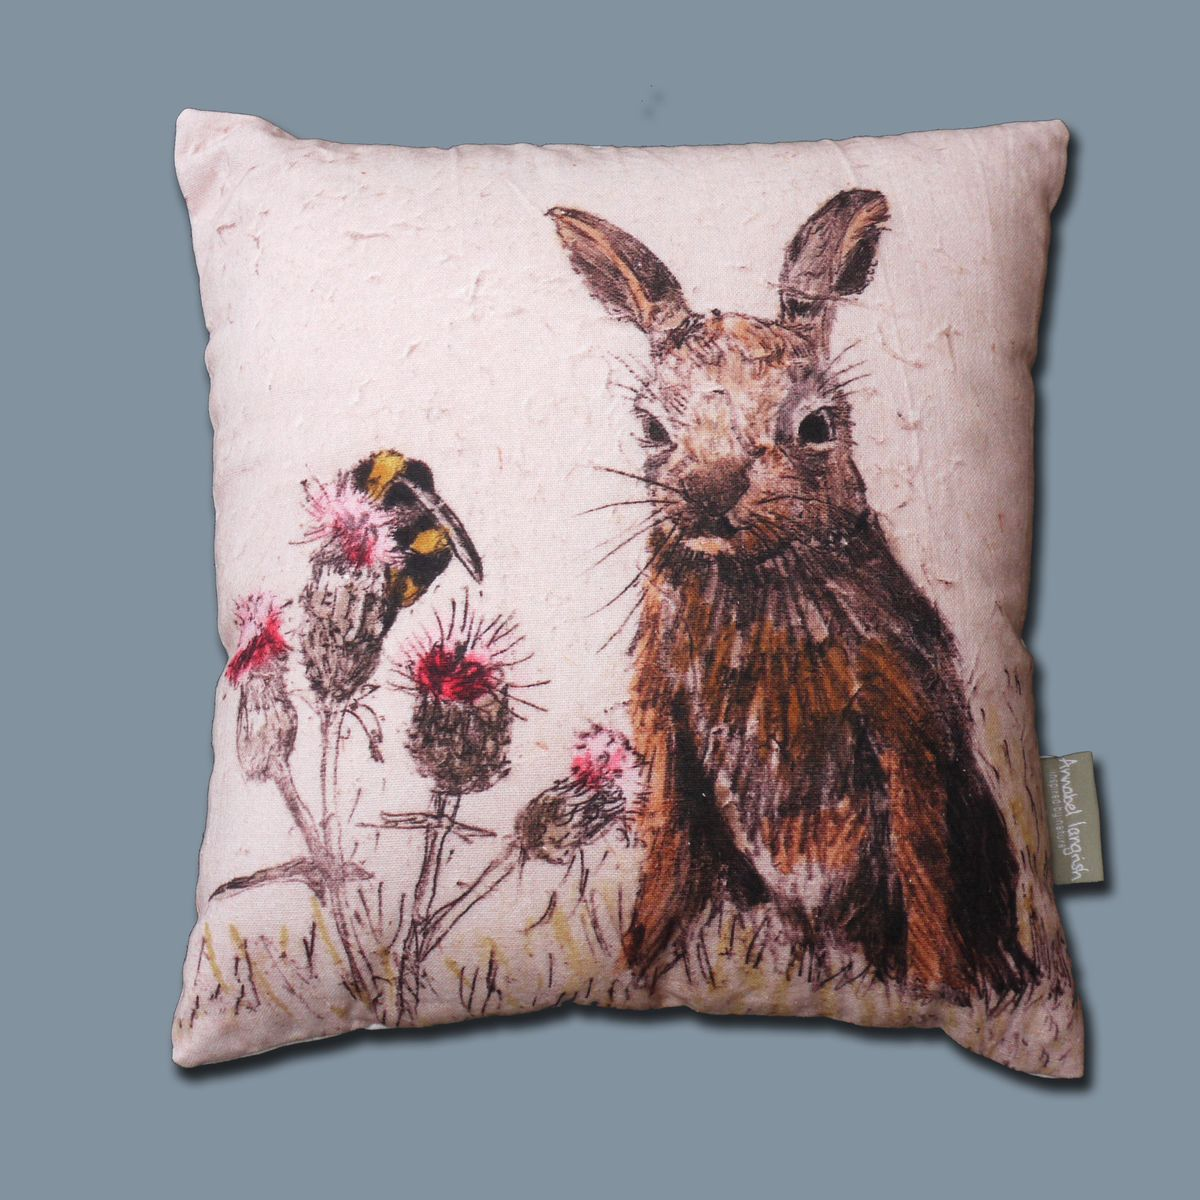 Wildlife Leveret Cushion - product image